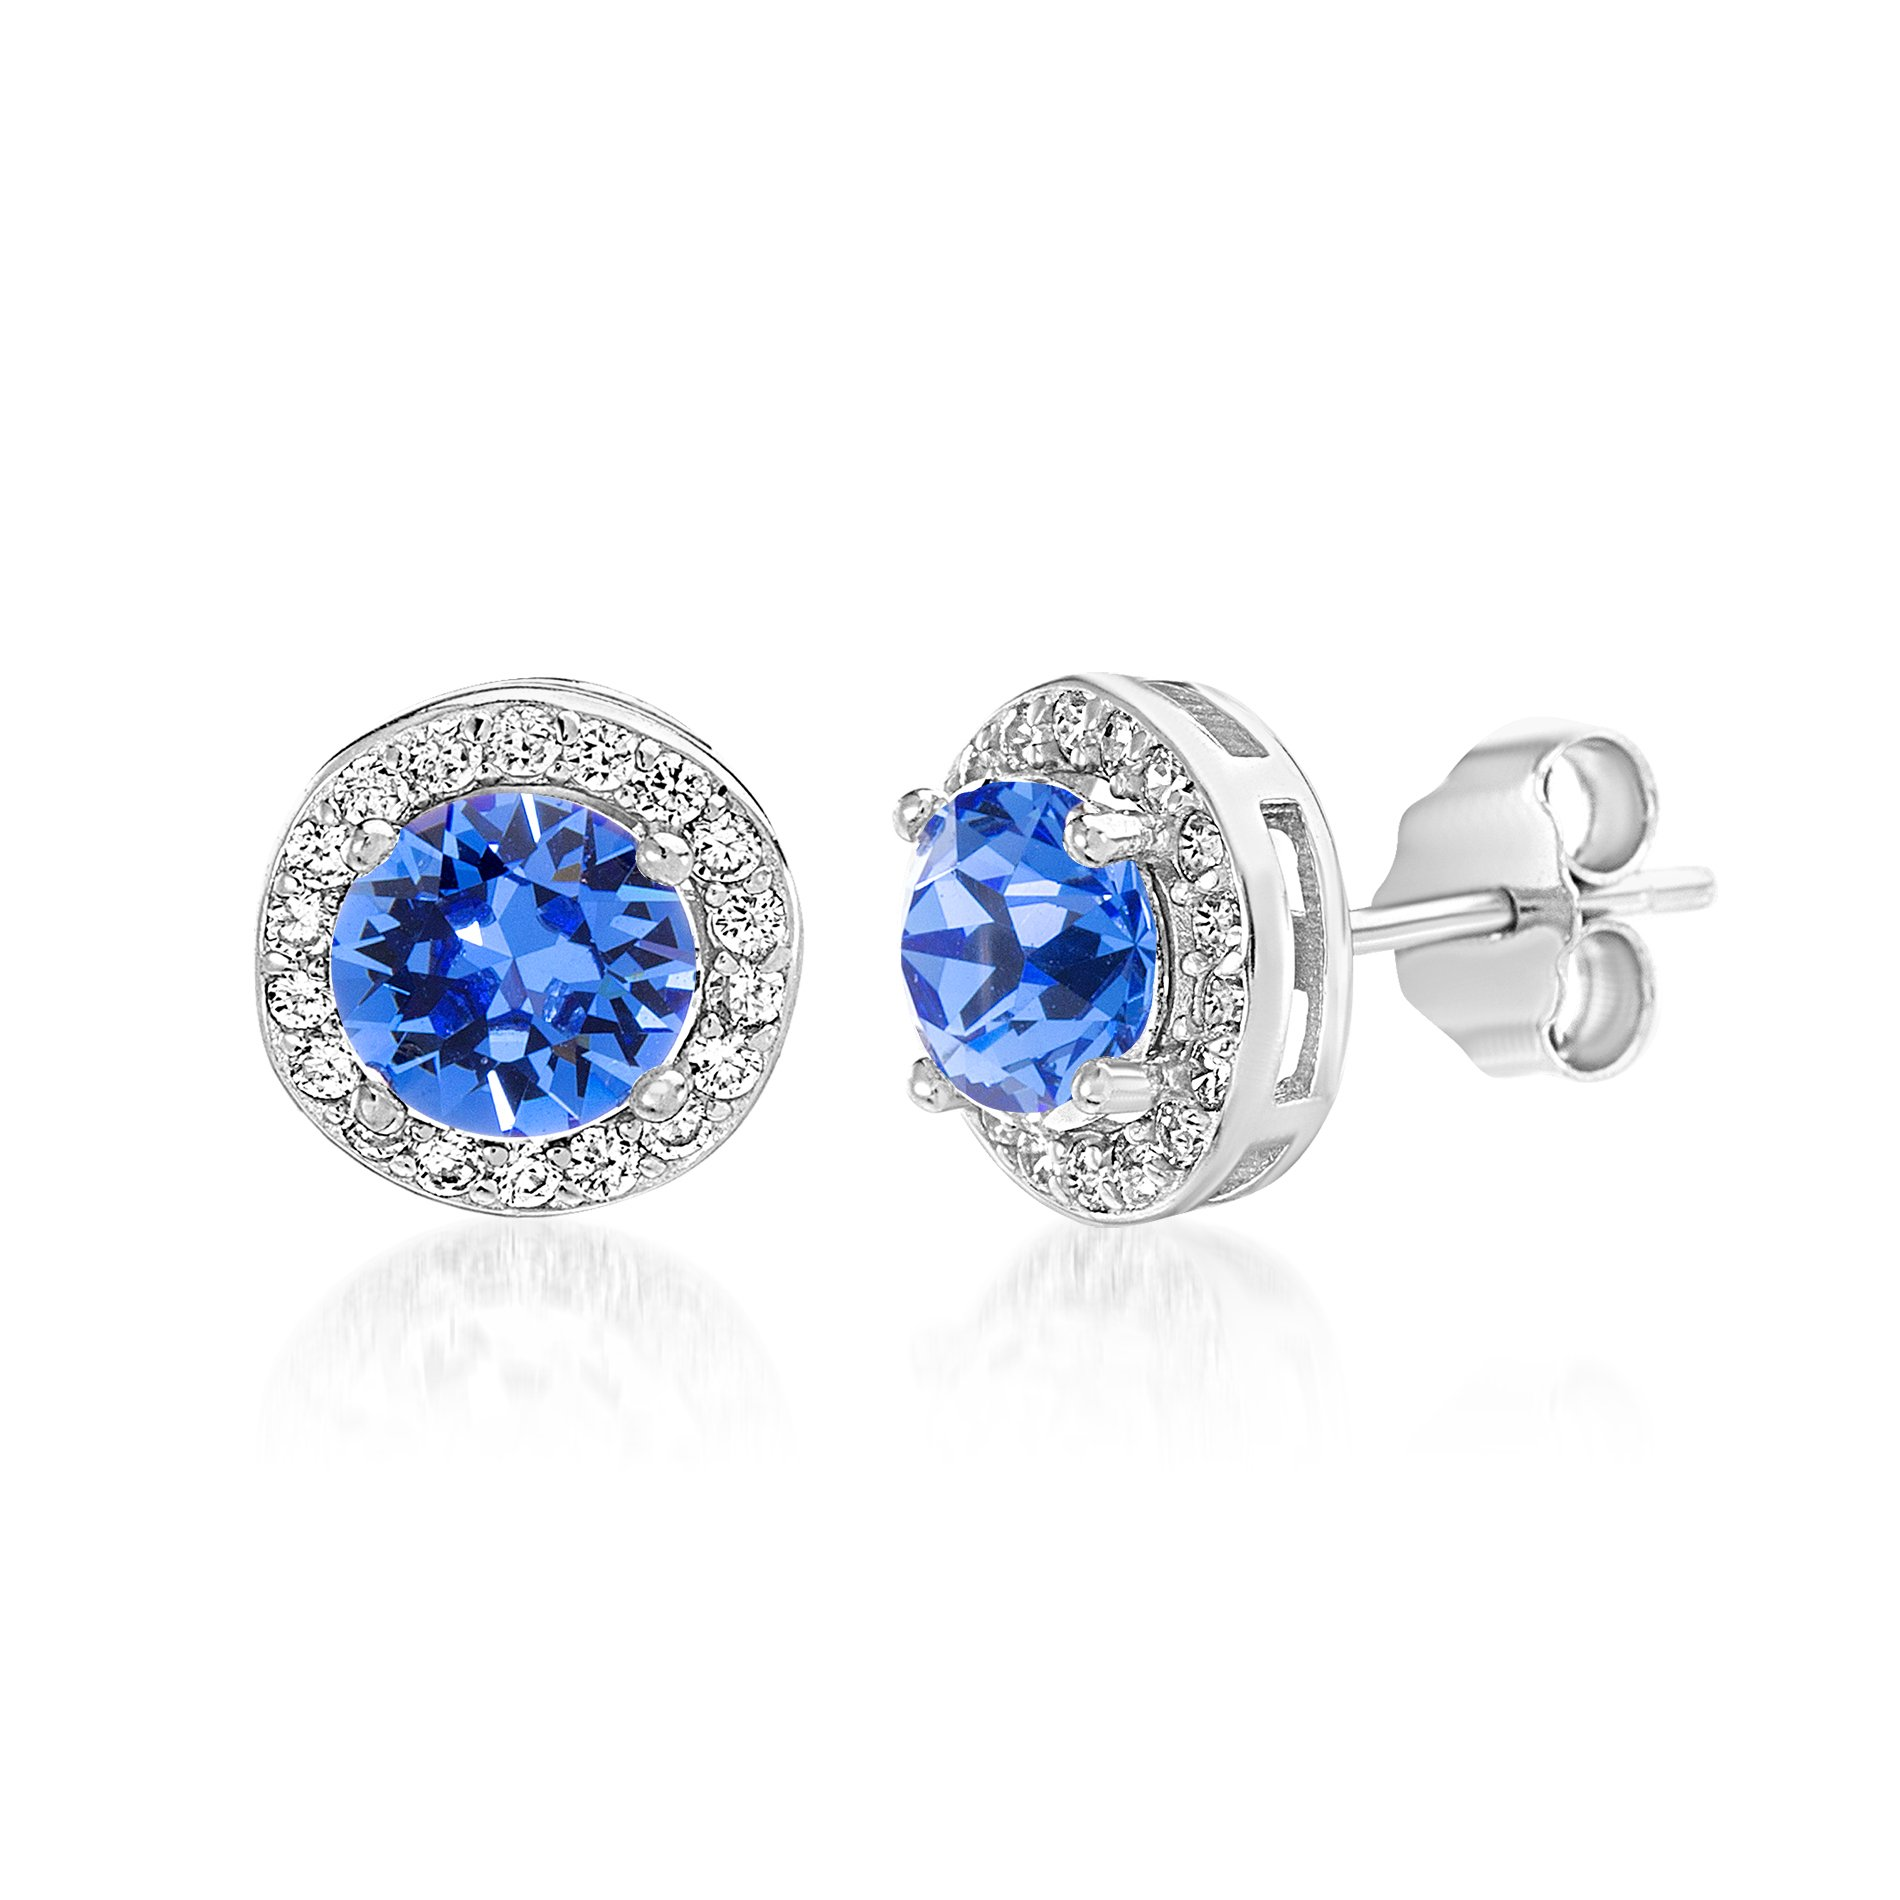 Devin Rose Women's Round Halo Stud Gift Earrings Made With Swarovski Crystals in Sterling Silver (Sapphire Crystal Imitation September Birthstone)